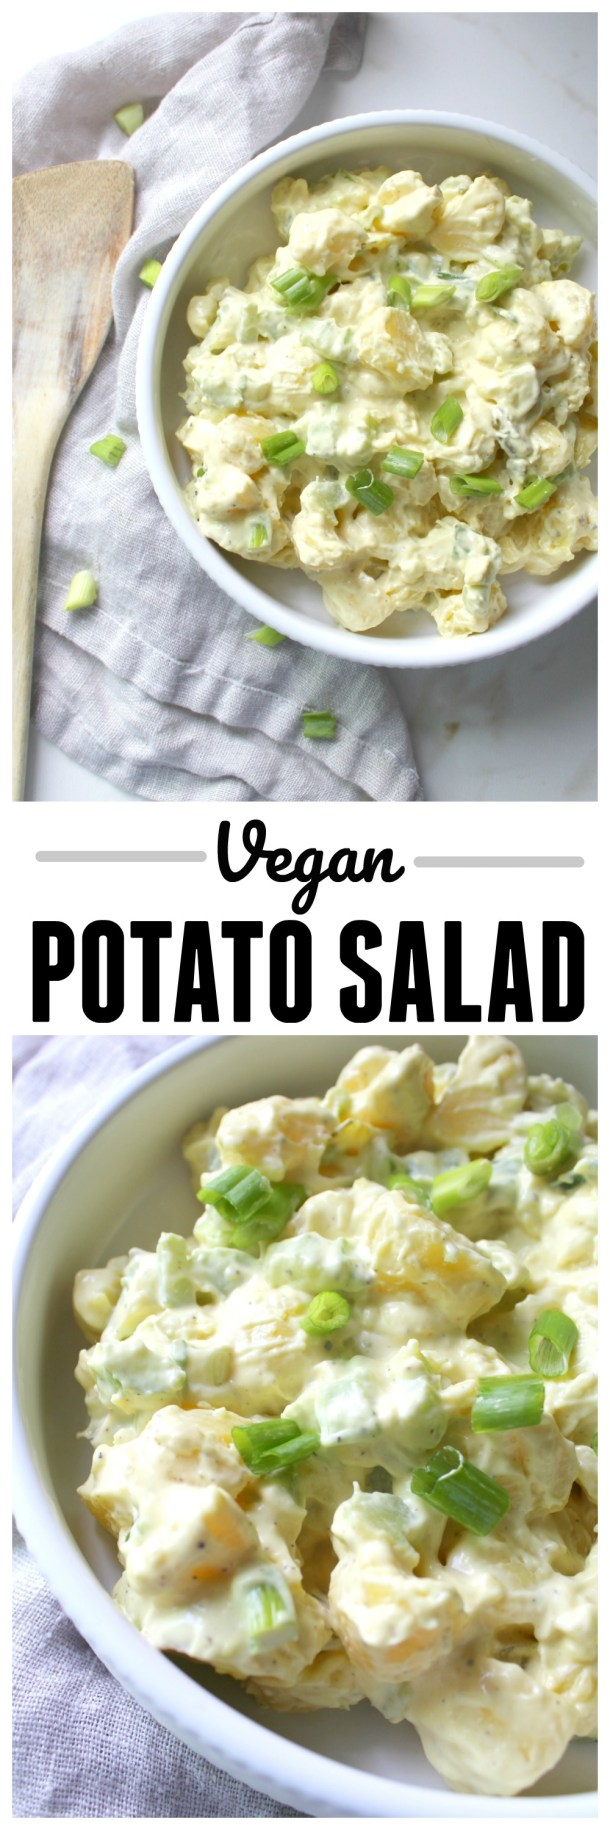 Make a summer favorite plant-based with this super simple (and delicious) Vegan Potato Salad. A new age take with all of the classic flavors | ThisSavoryVegan.com